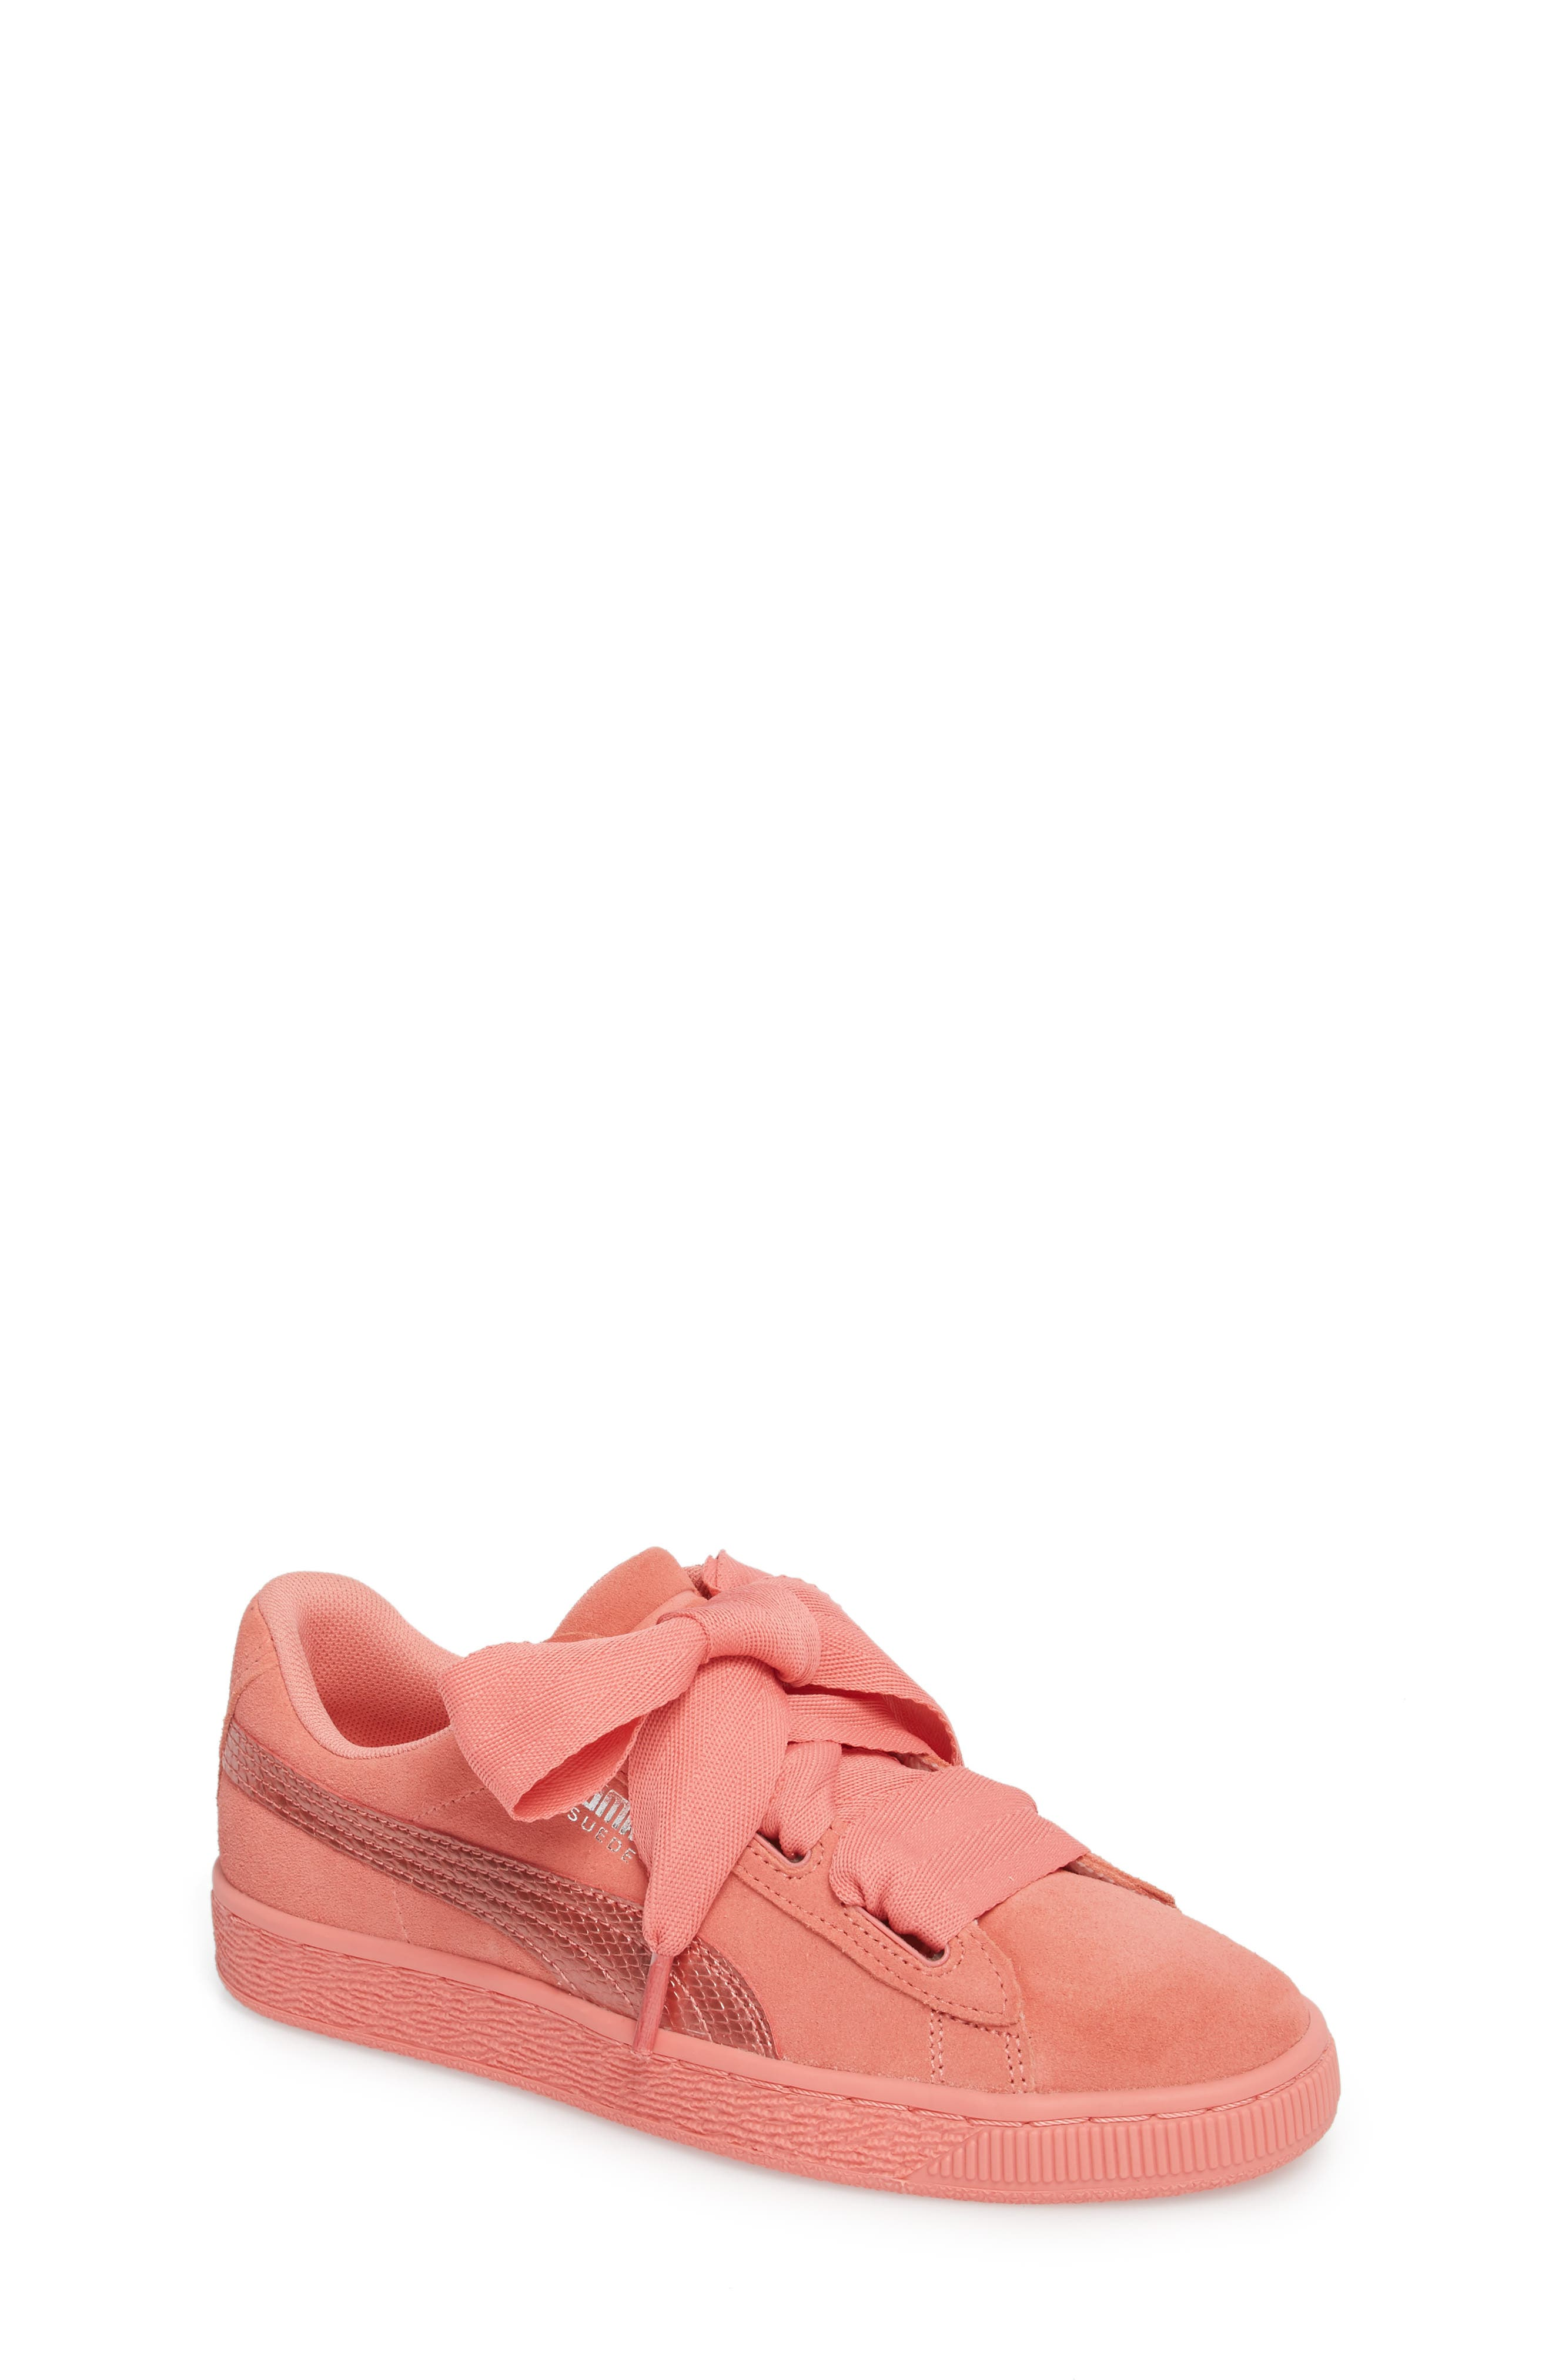 Suede Heart Sneaker,                         Main,                         color, Shell Pink/ Shell Pink